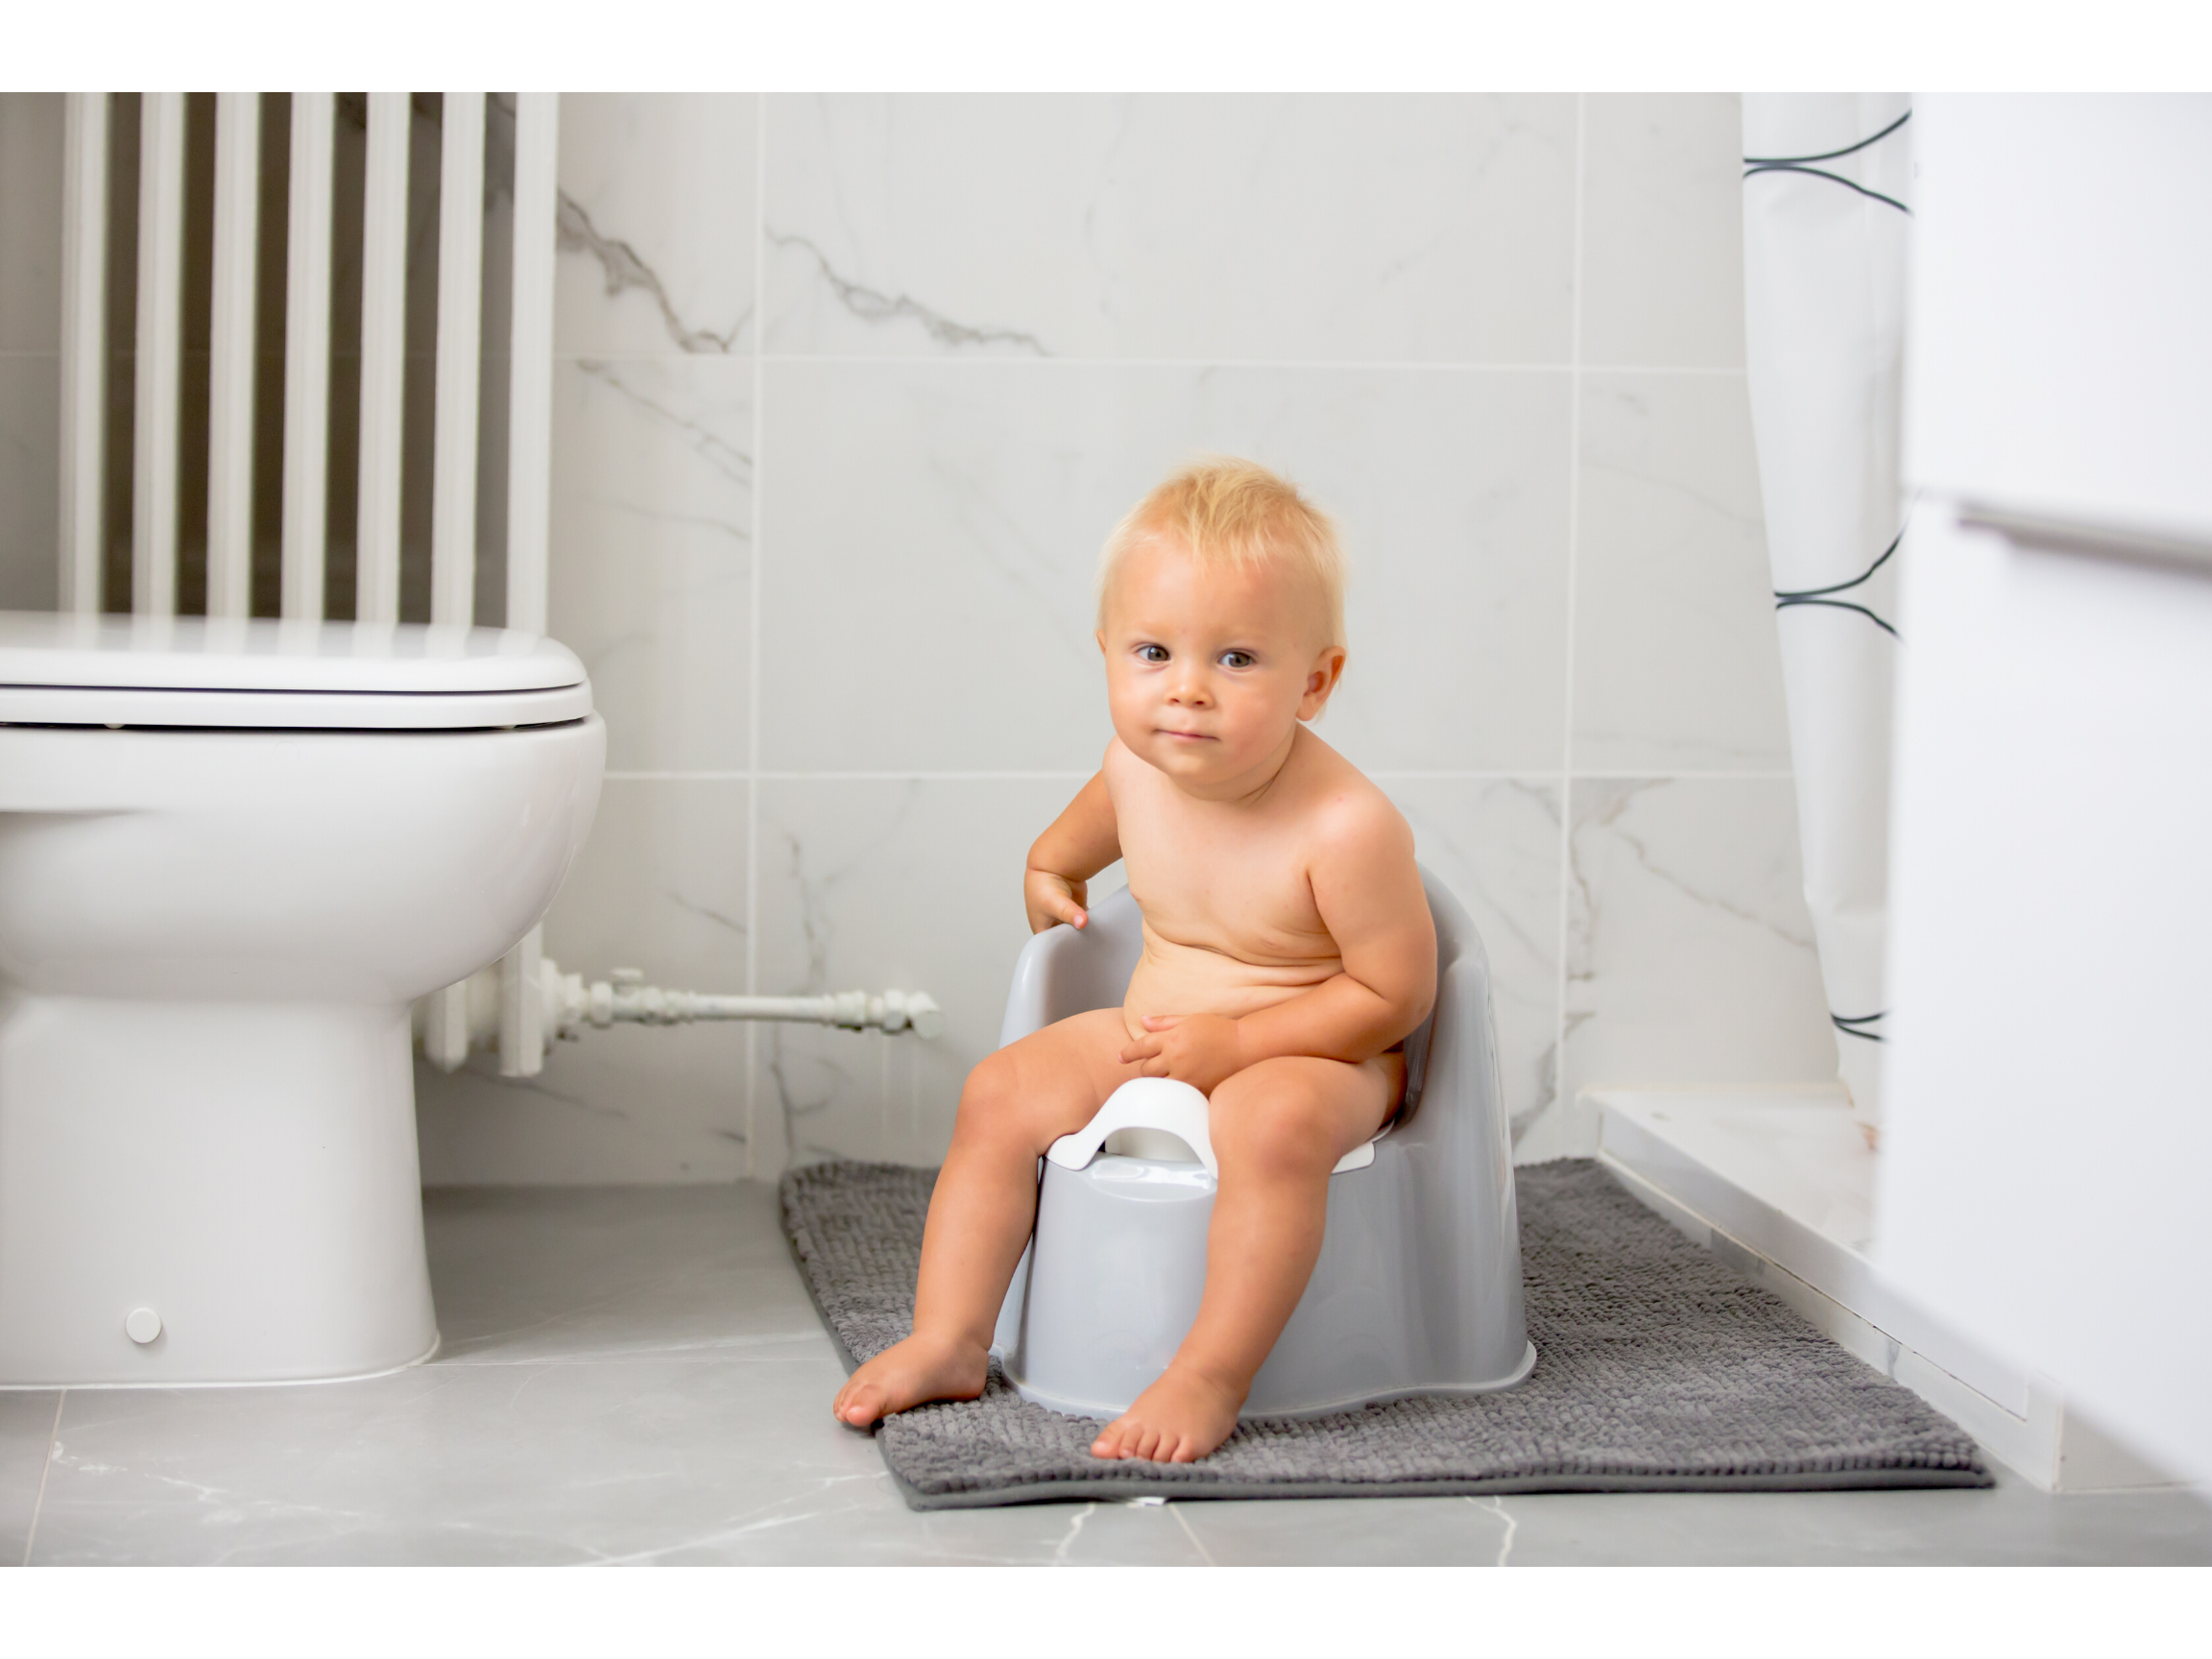 Child sitting on a potty in the bathroom